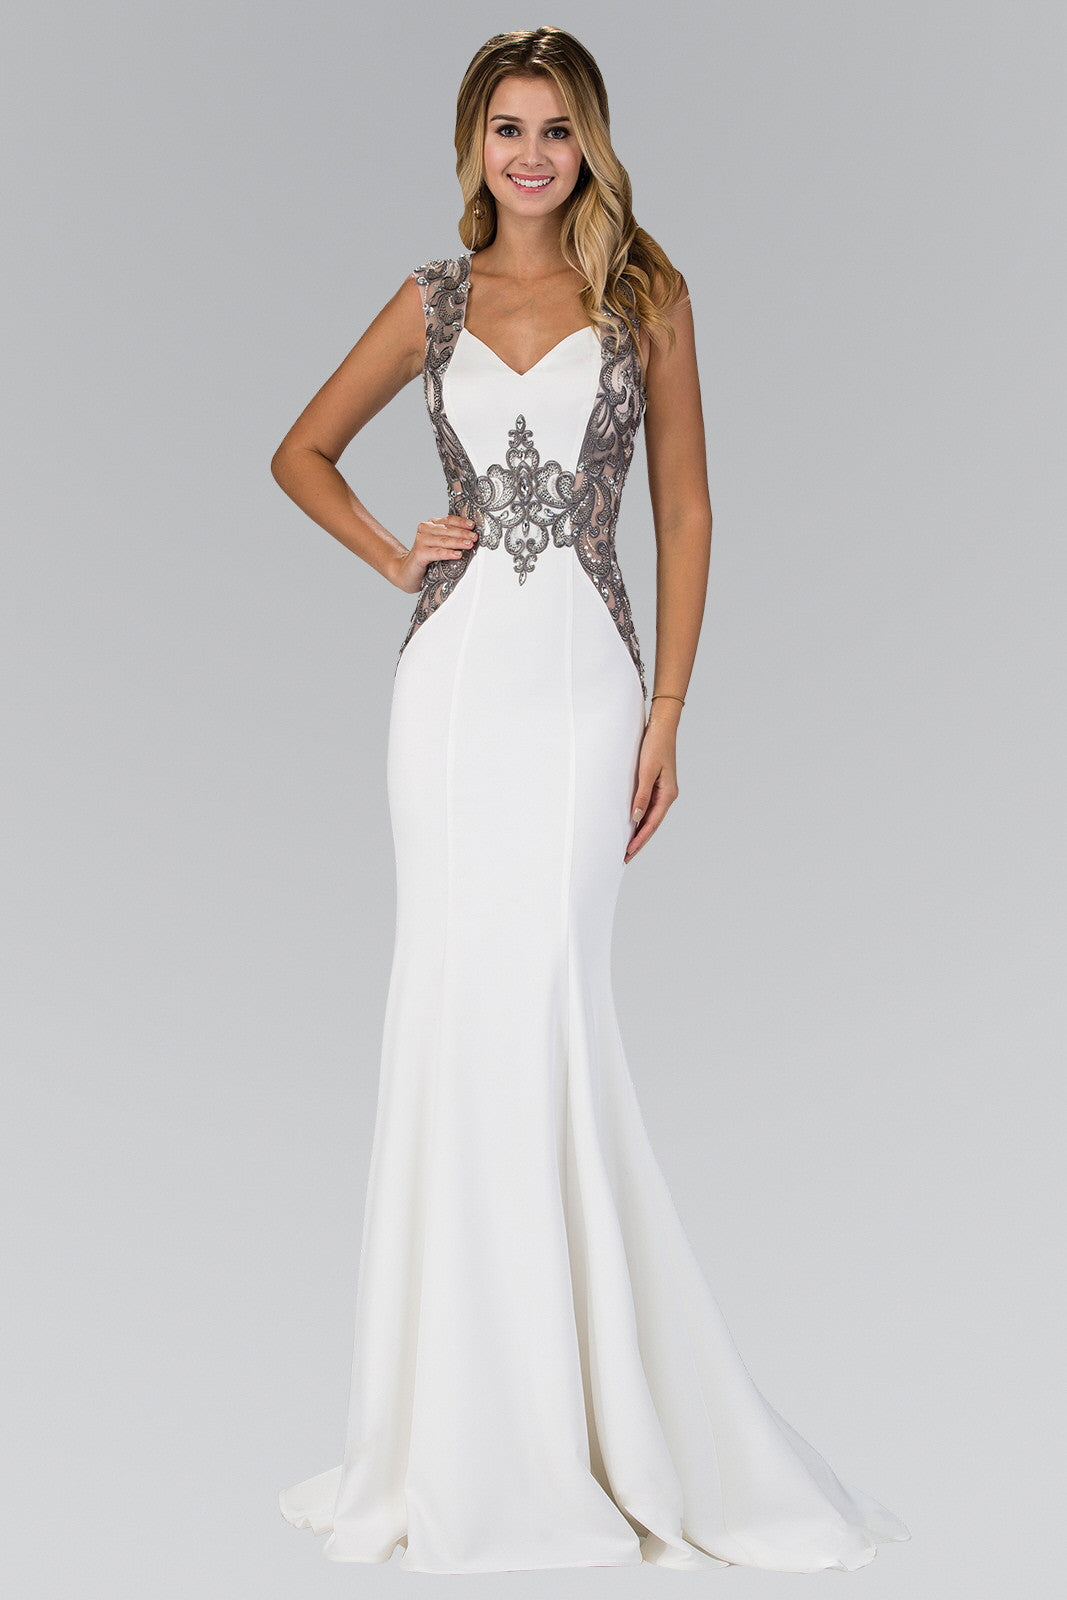 White Cut Out Back Evening Gown Black Tie Dress Simply Fab Dress